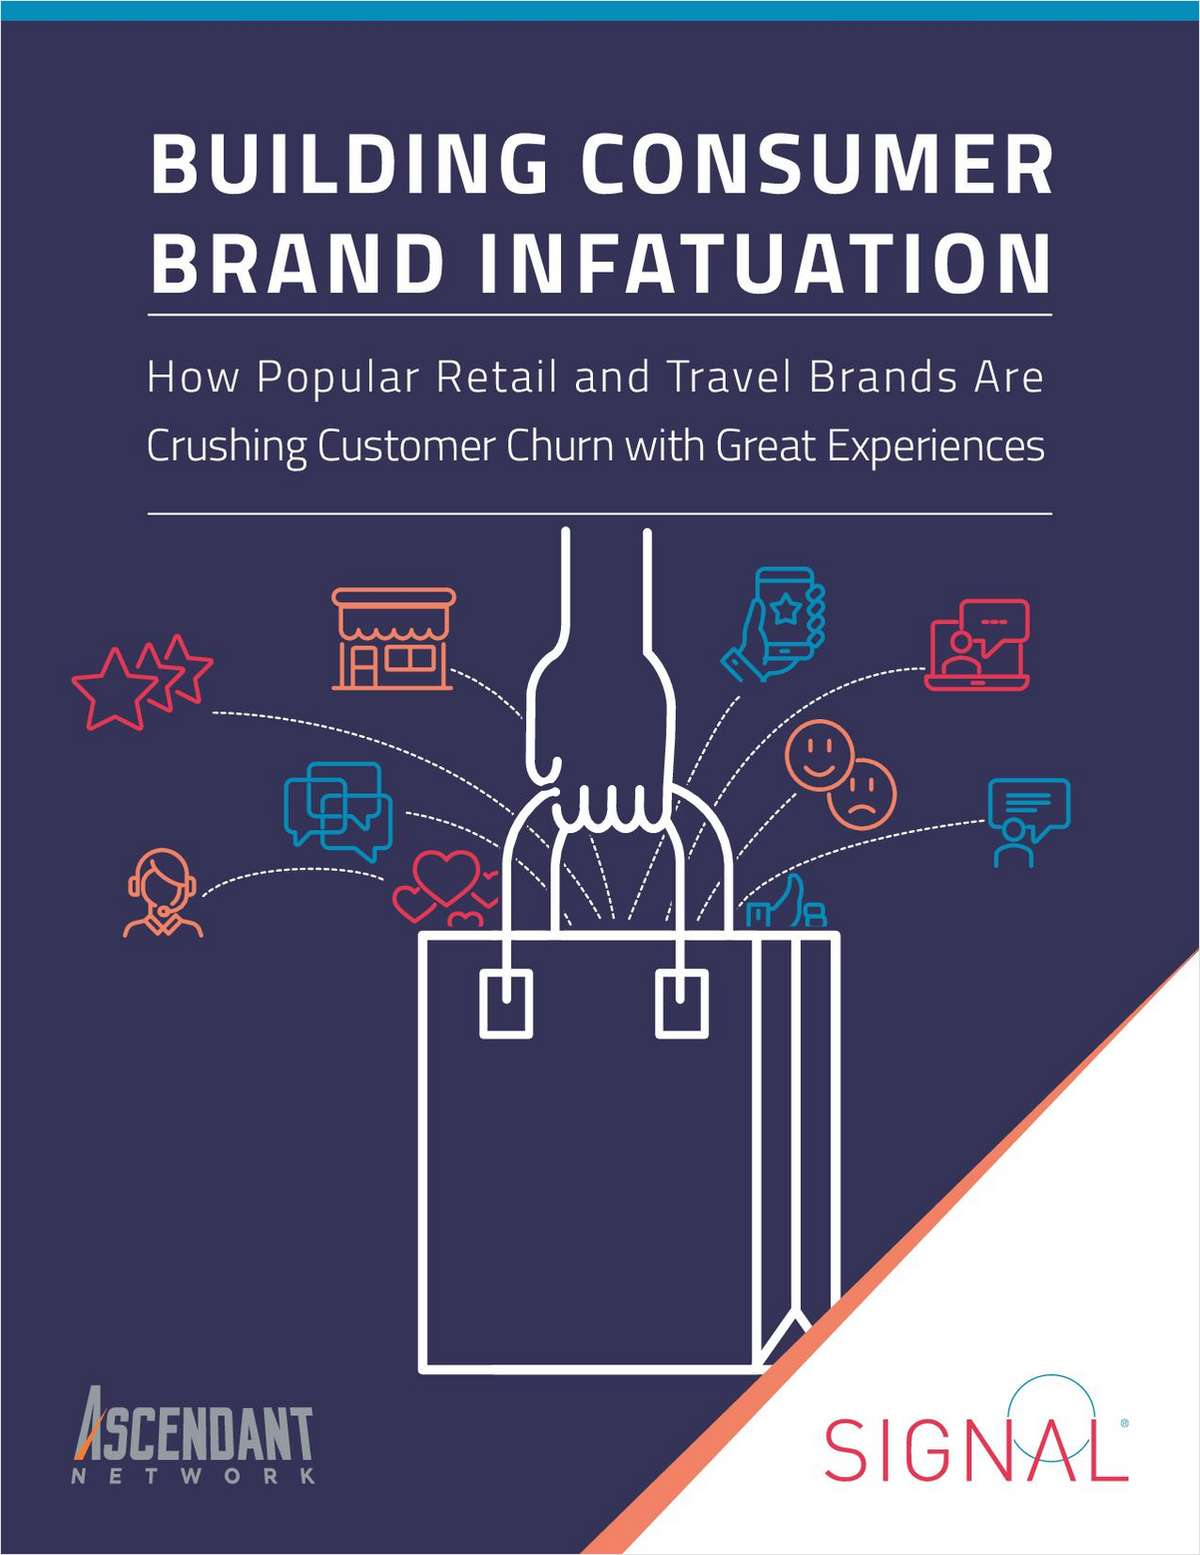 Building Consumer Brand Infatuation